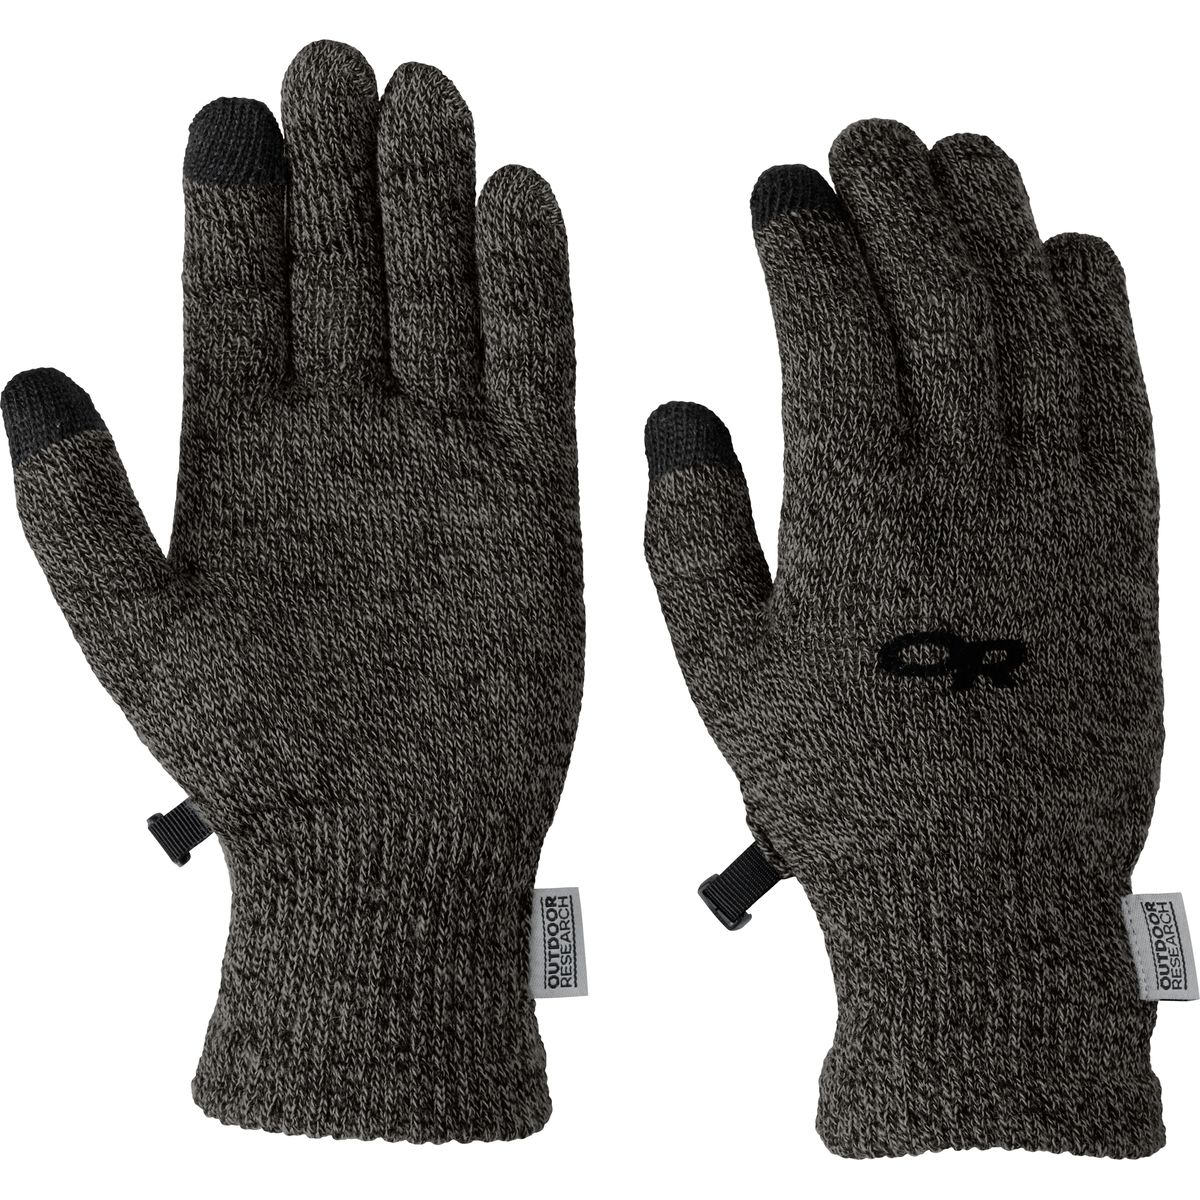 Outdoor Research Biosensor Glove Liners - Kids